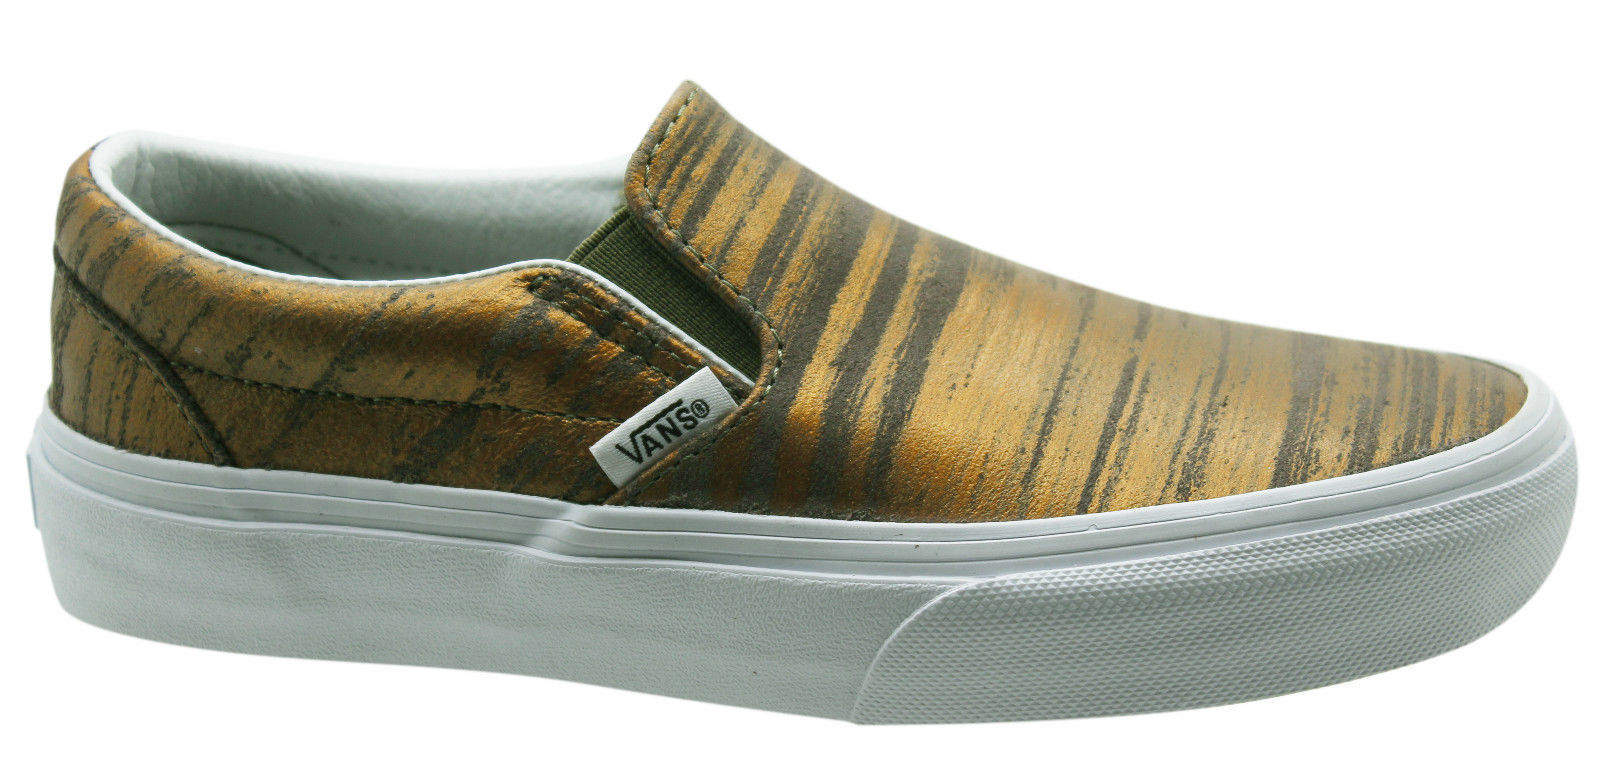 24b98ebba2 Details about Vans Classic Slip On Brushed Metallic Gold Mens Trainers Shoes  3DVHXW D37